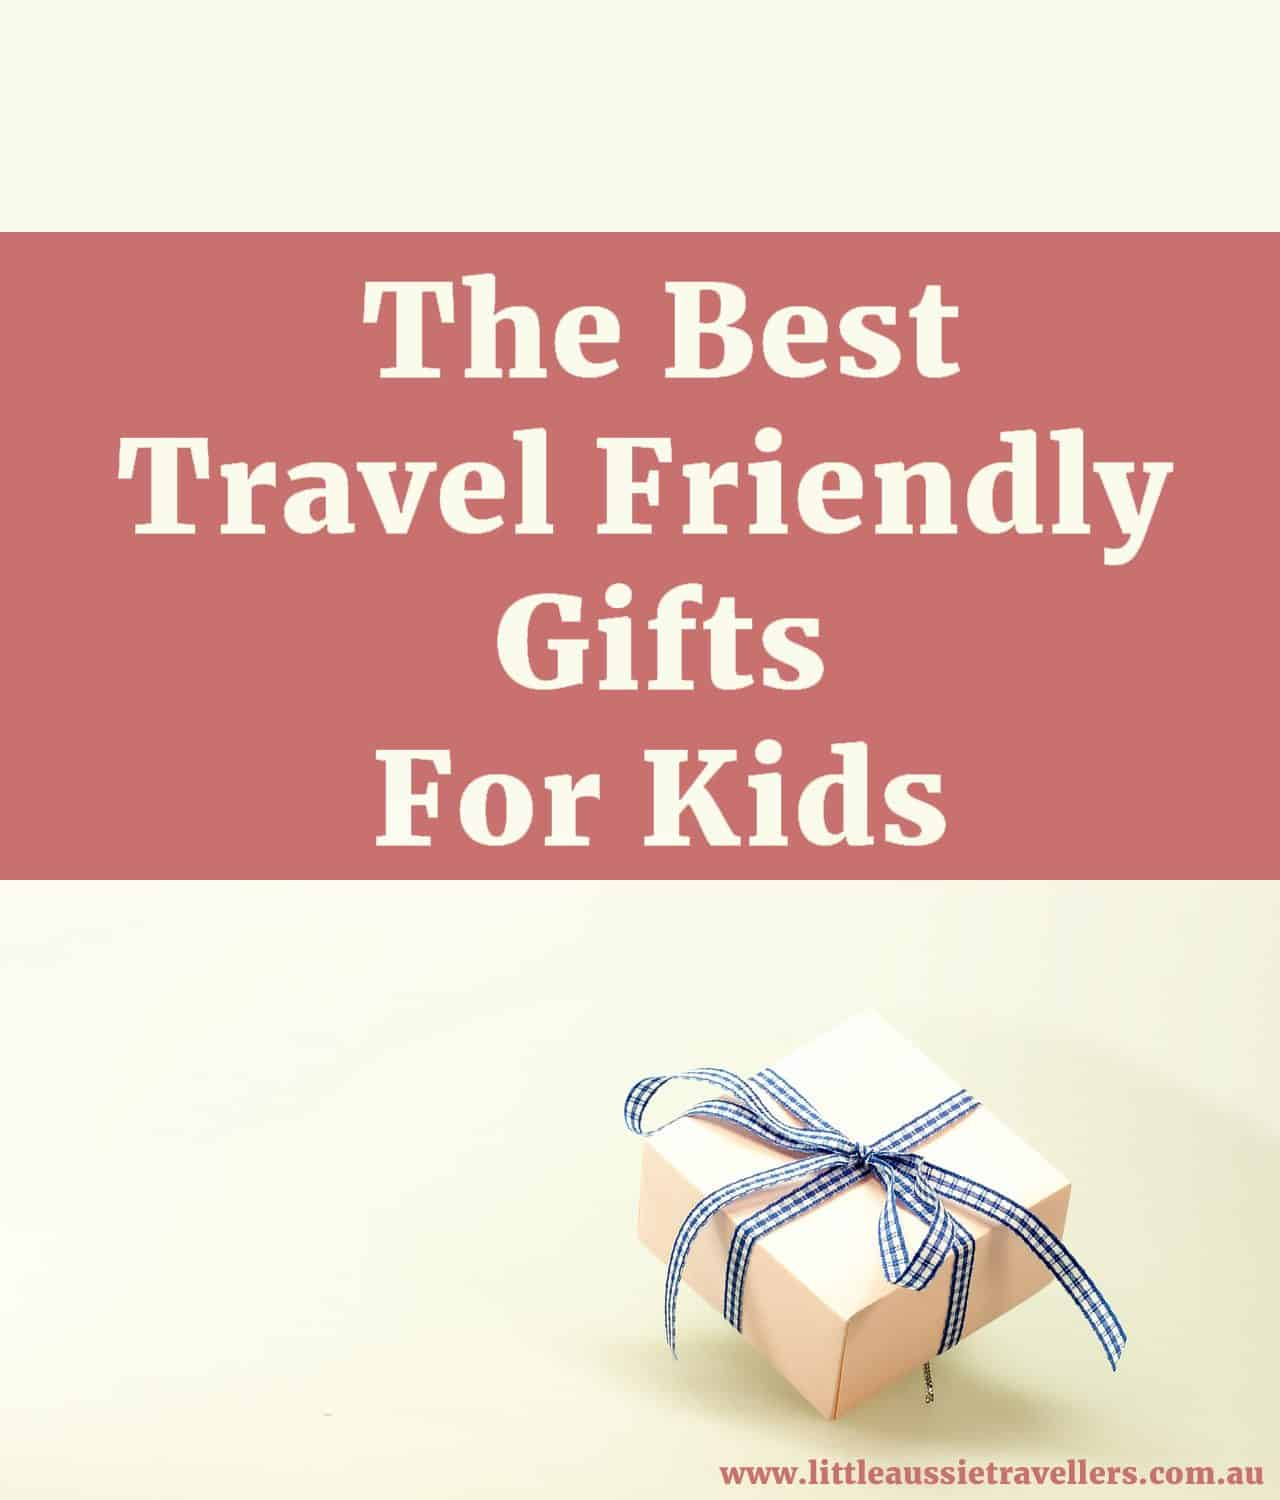 The Best Travel Gifts For Kids